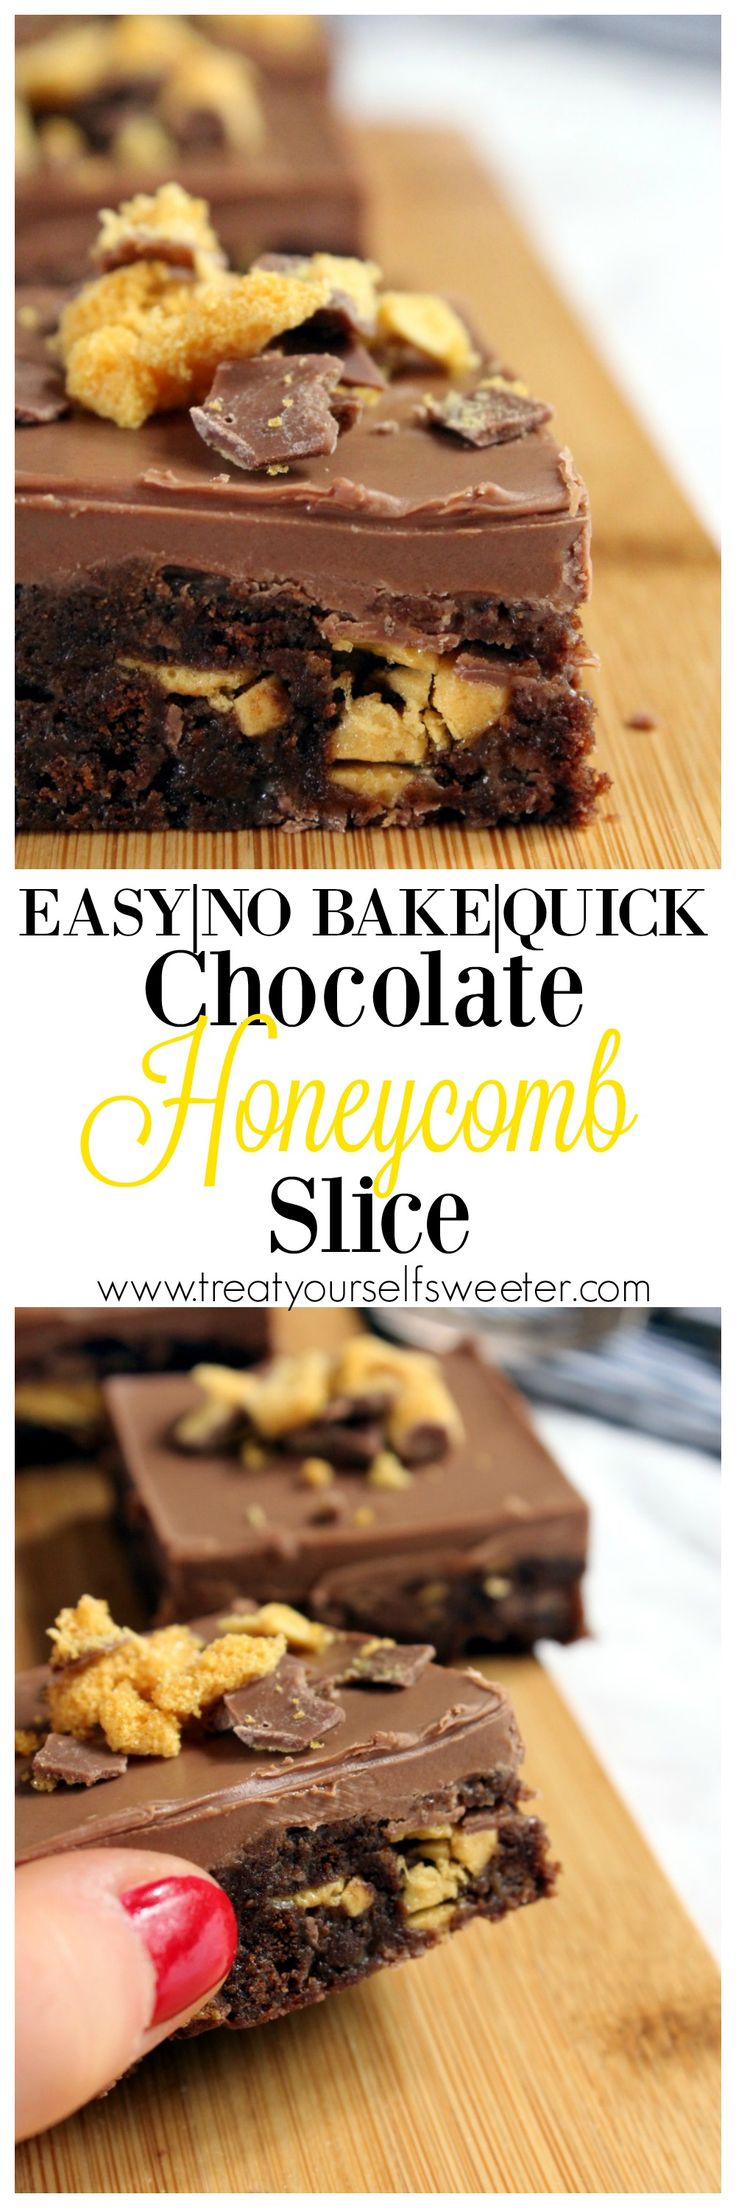 No Bake Honeycomb Slice; sweet chocolate biscuit base with pops of bright, crunchy honeycomb and a crisp layer of chocolate on top. Perfect treat or delicious dessert.